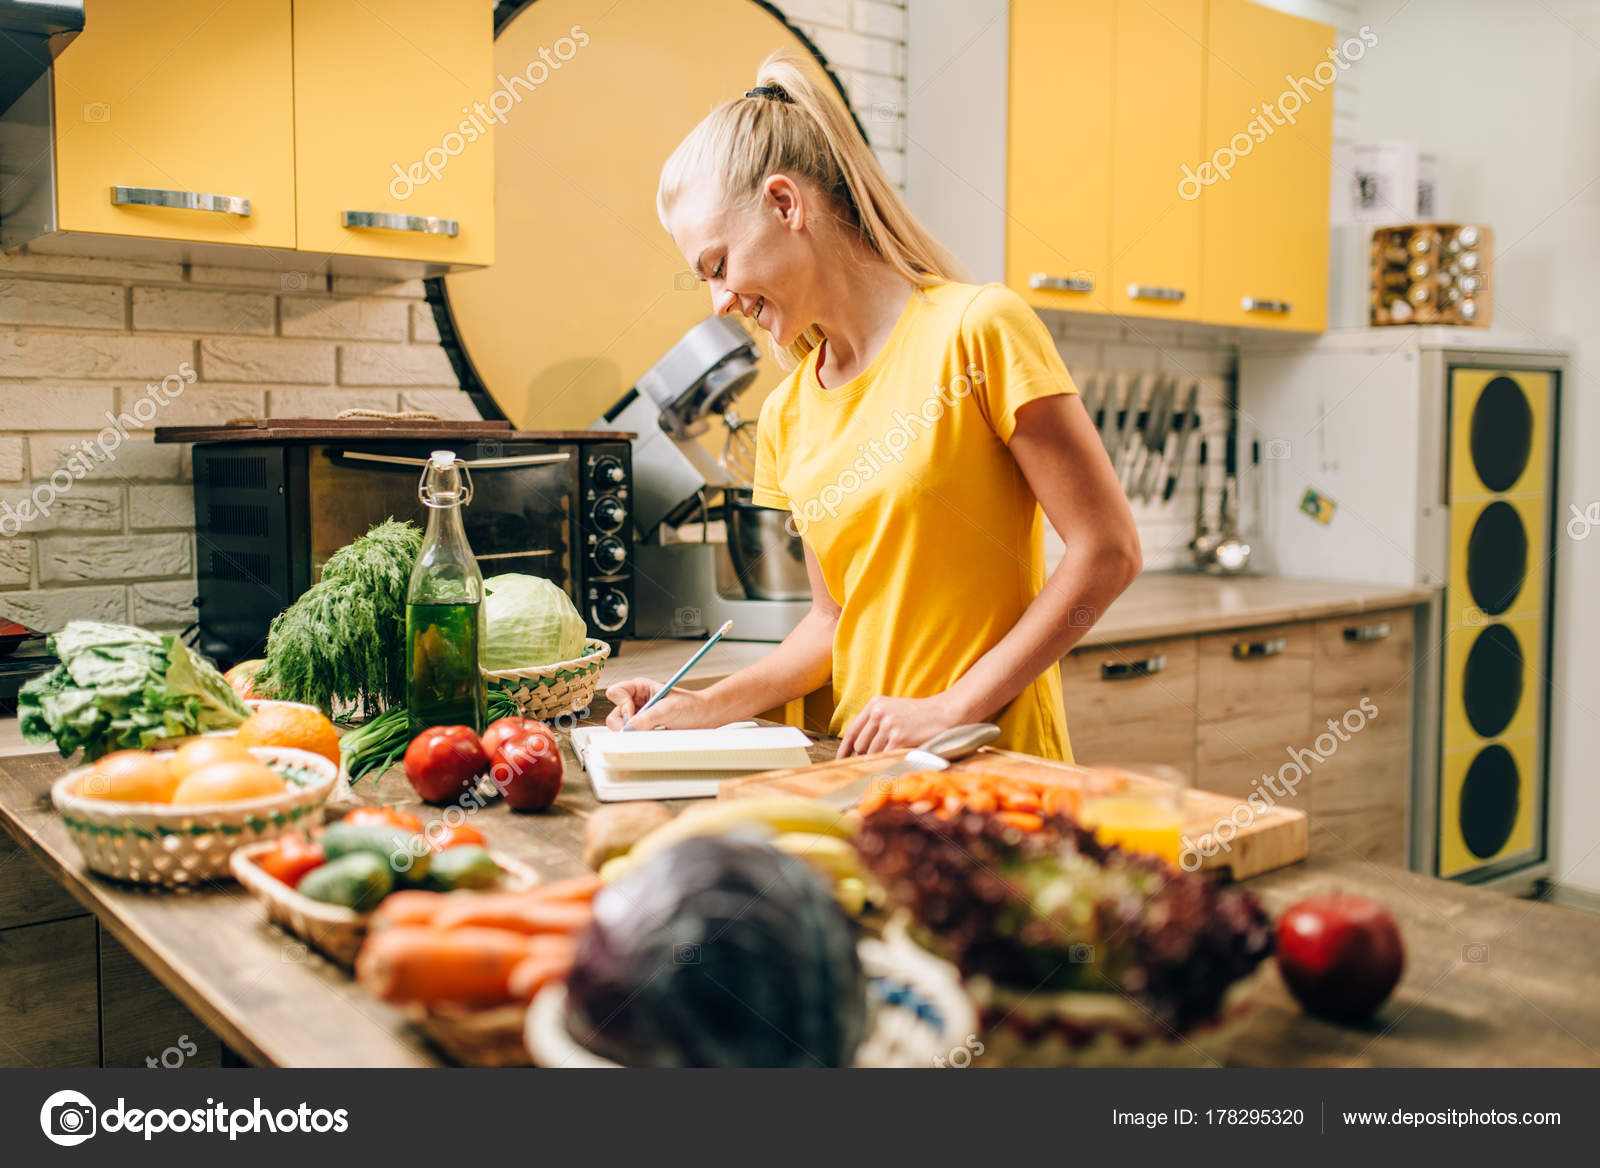 Young woman cooking kitchen writing recipe book healthy food young woman cooking kitchen writing recipe book healthy food vegetarian stock photo forumfinder Choice Image